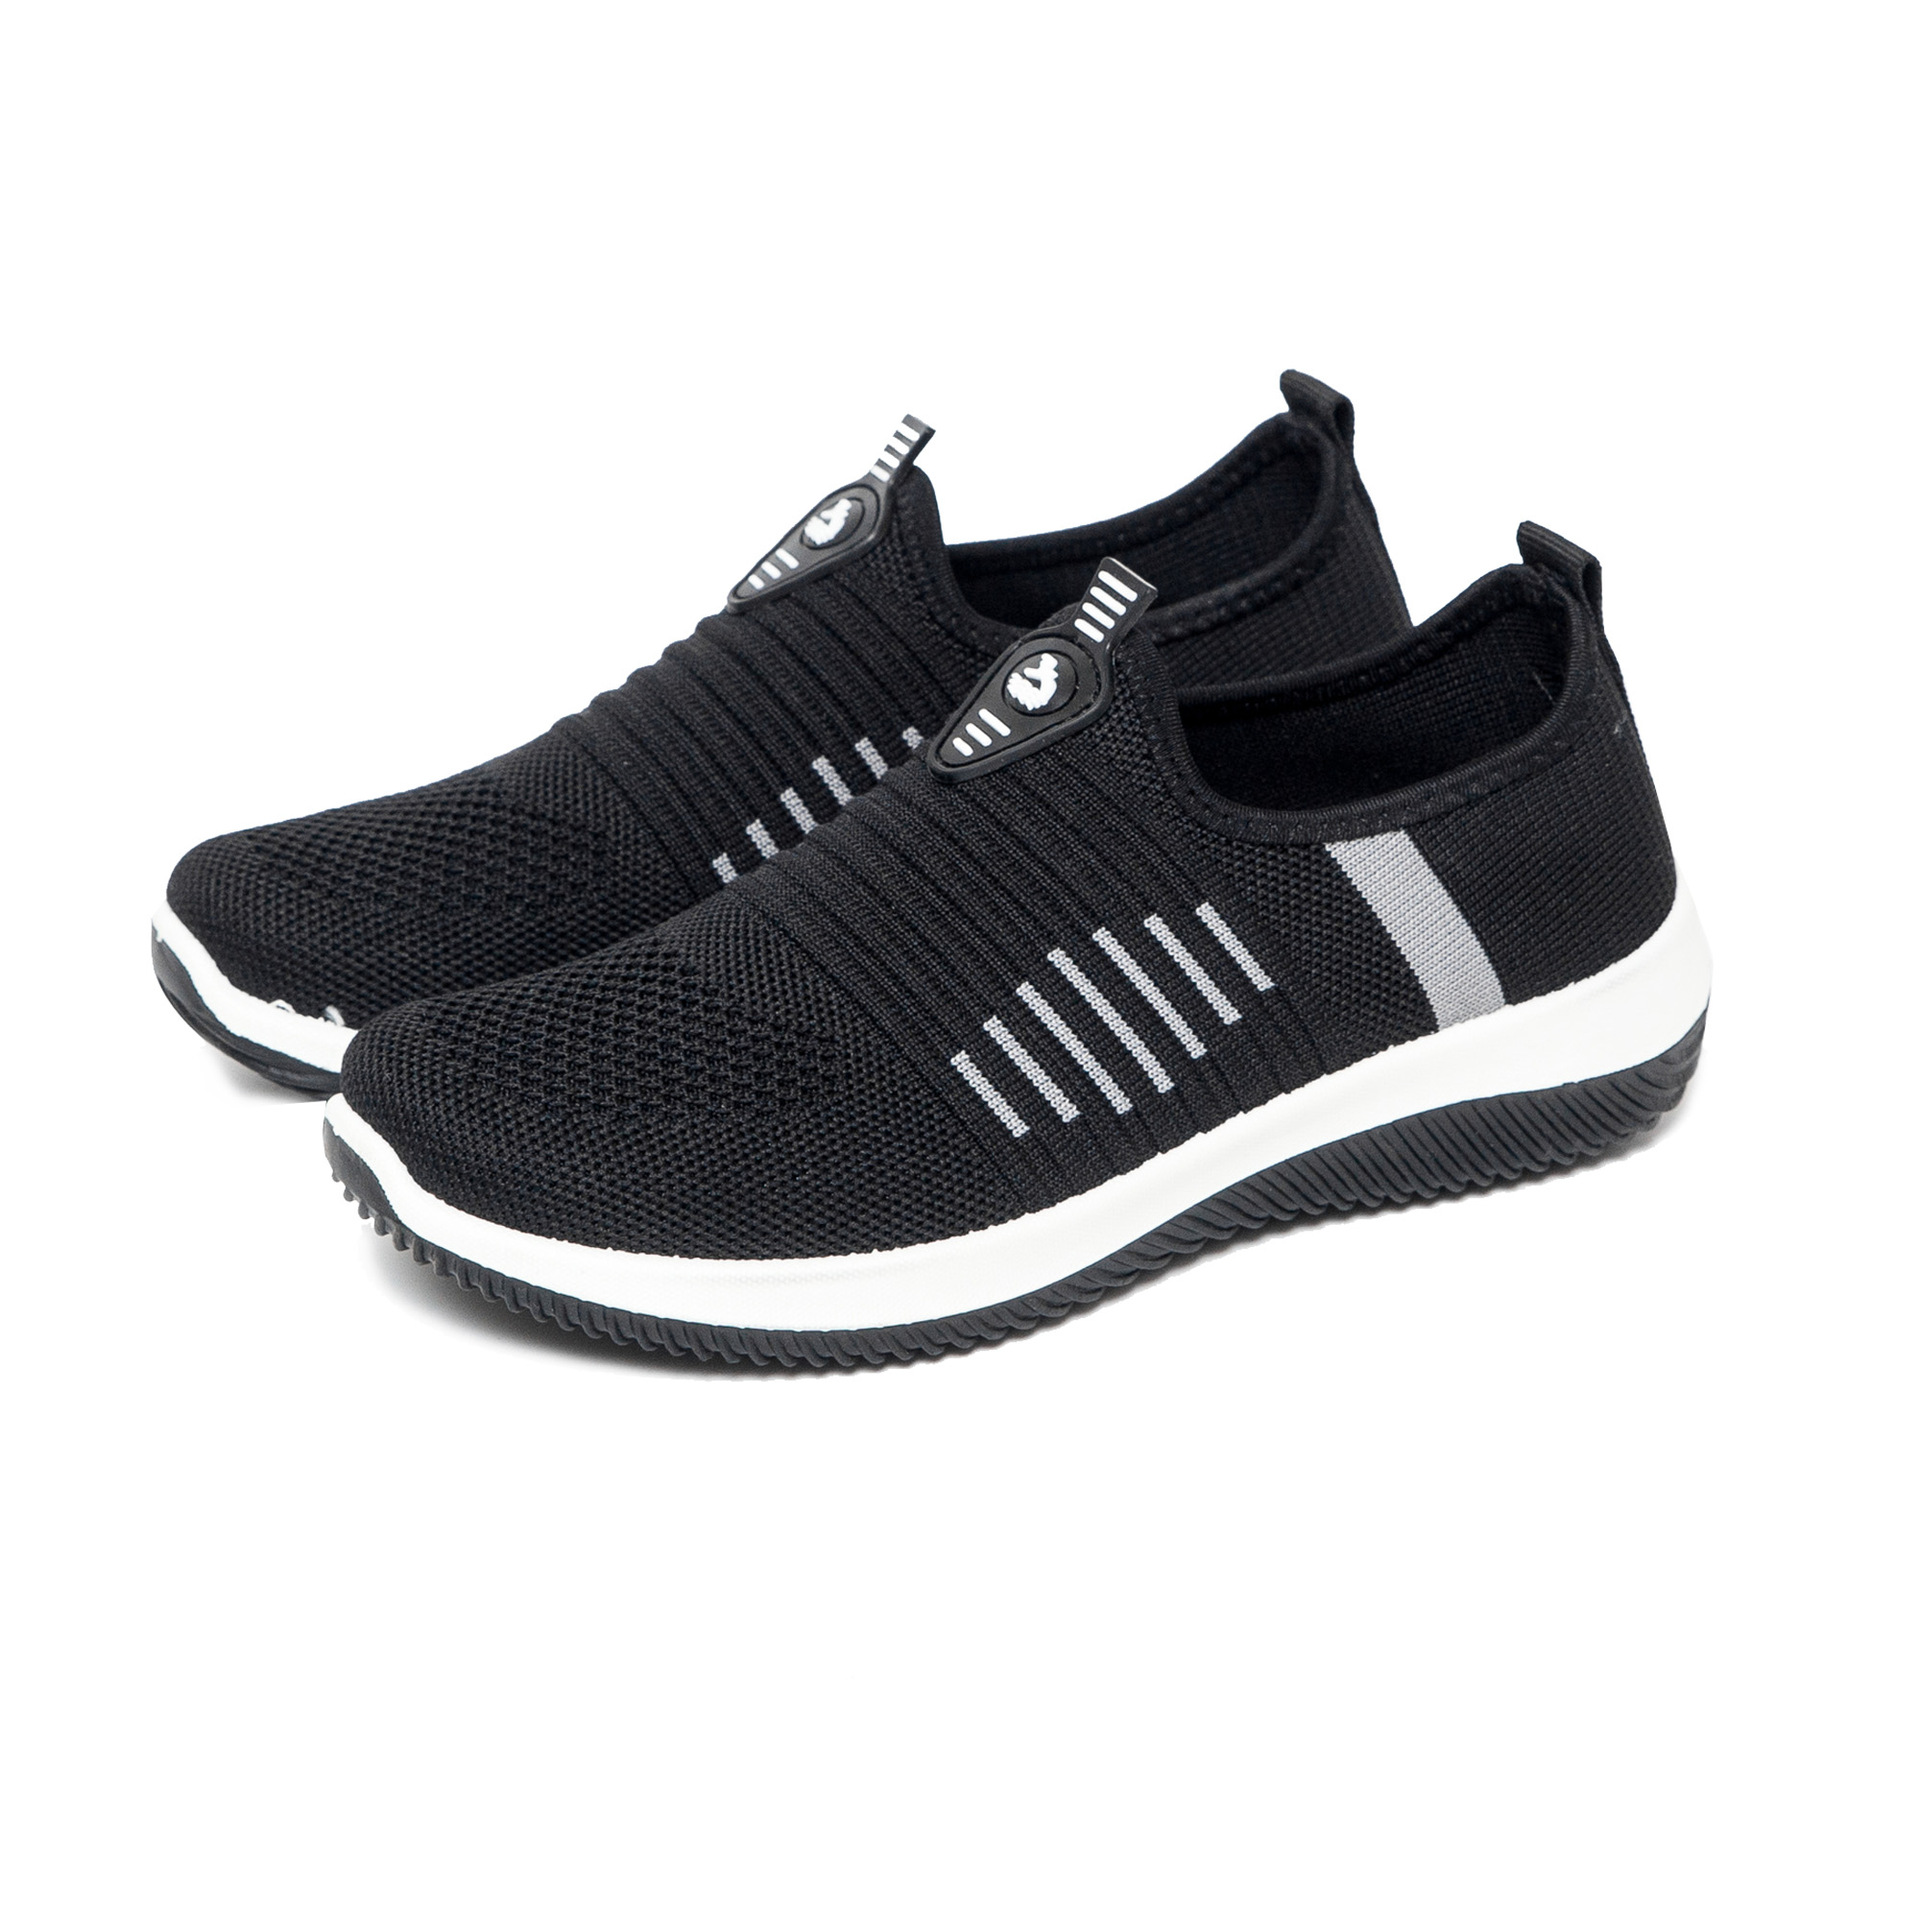 Sneakers Women Vulcanize Shoes Summer Ladies Trainer Knitted Shoes Spring Flats Casual Slip-On Crystal Shoes Zapatillas Mujer